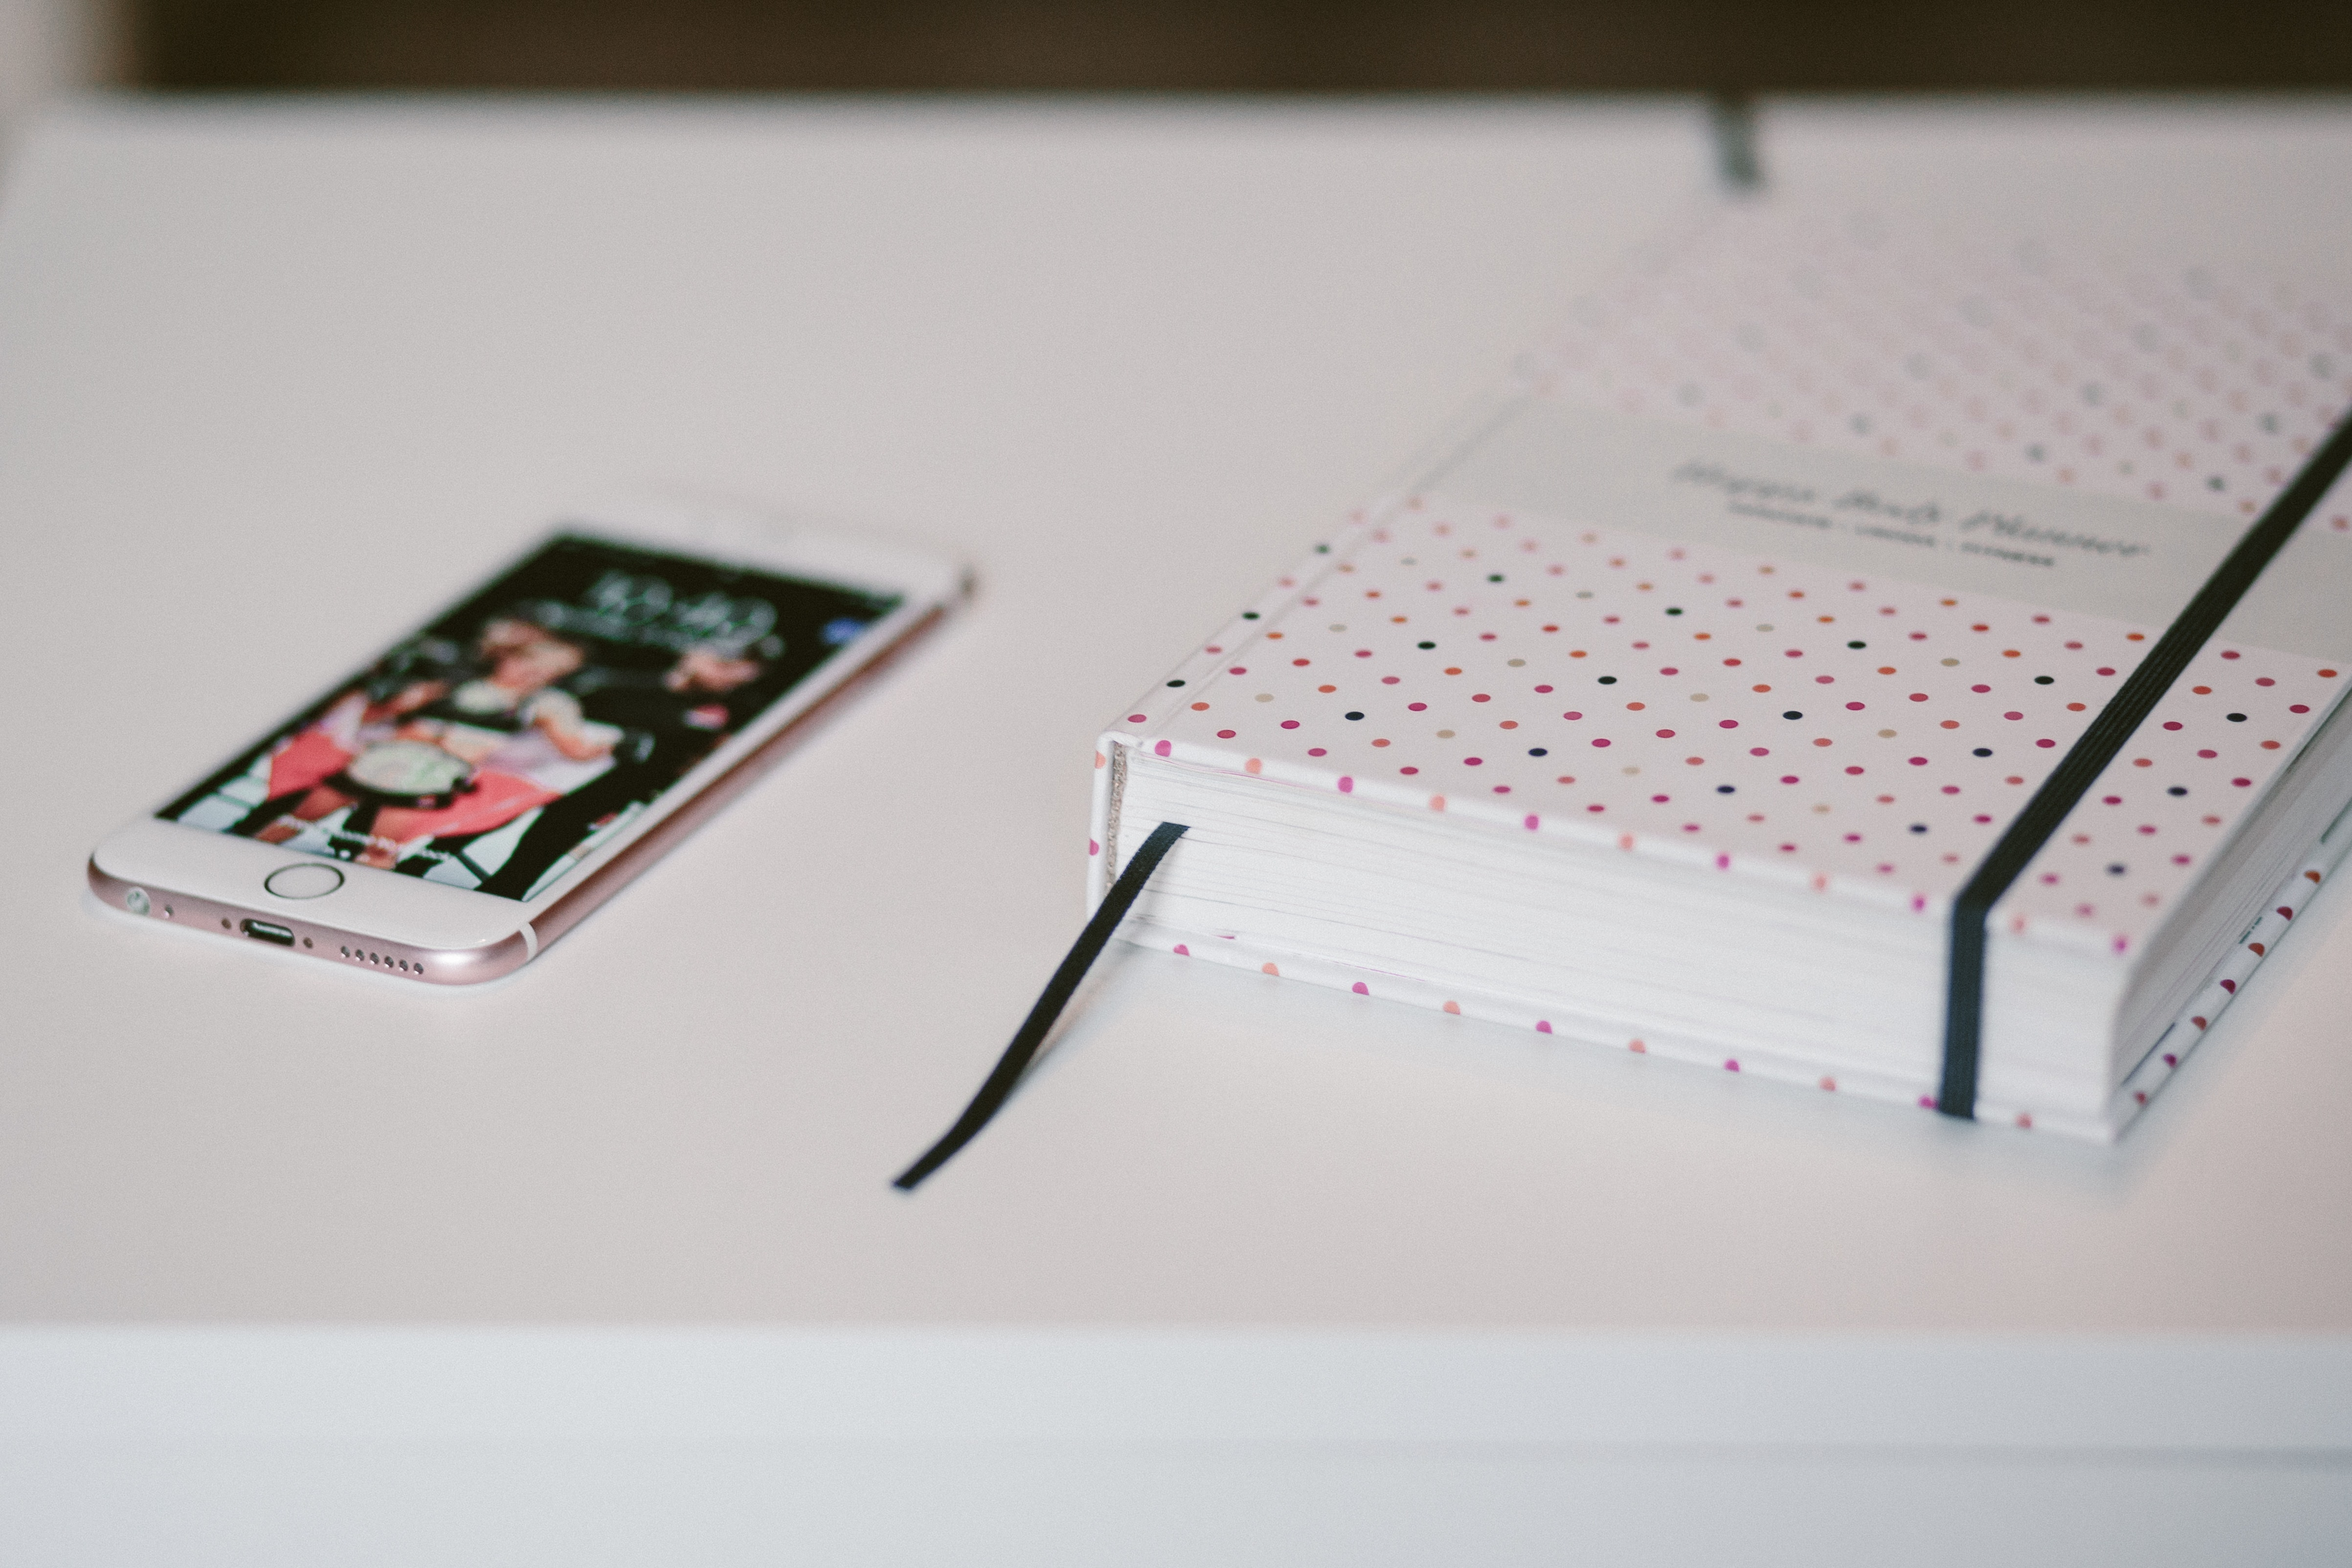 Free Photo Rose Gold Iphone 6s Beside White And Black Polka Dots